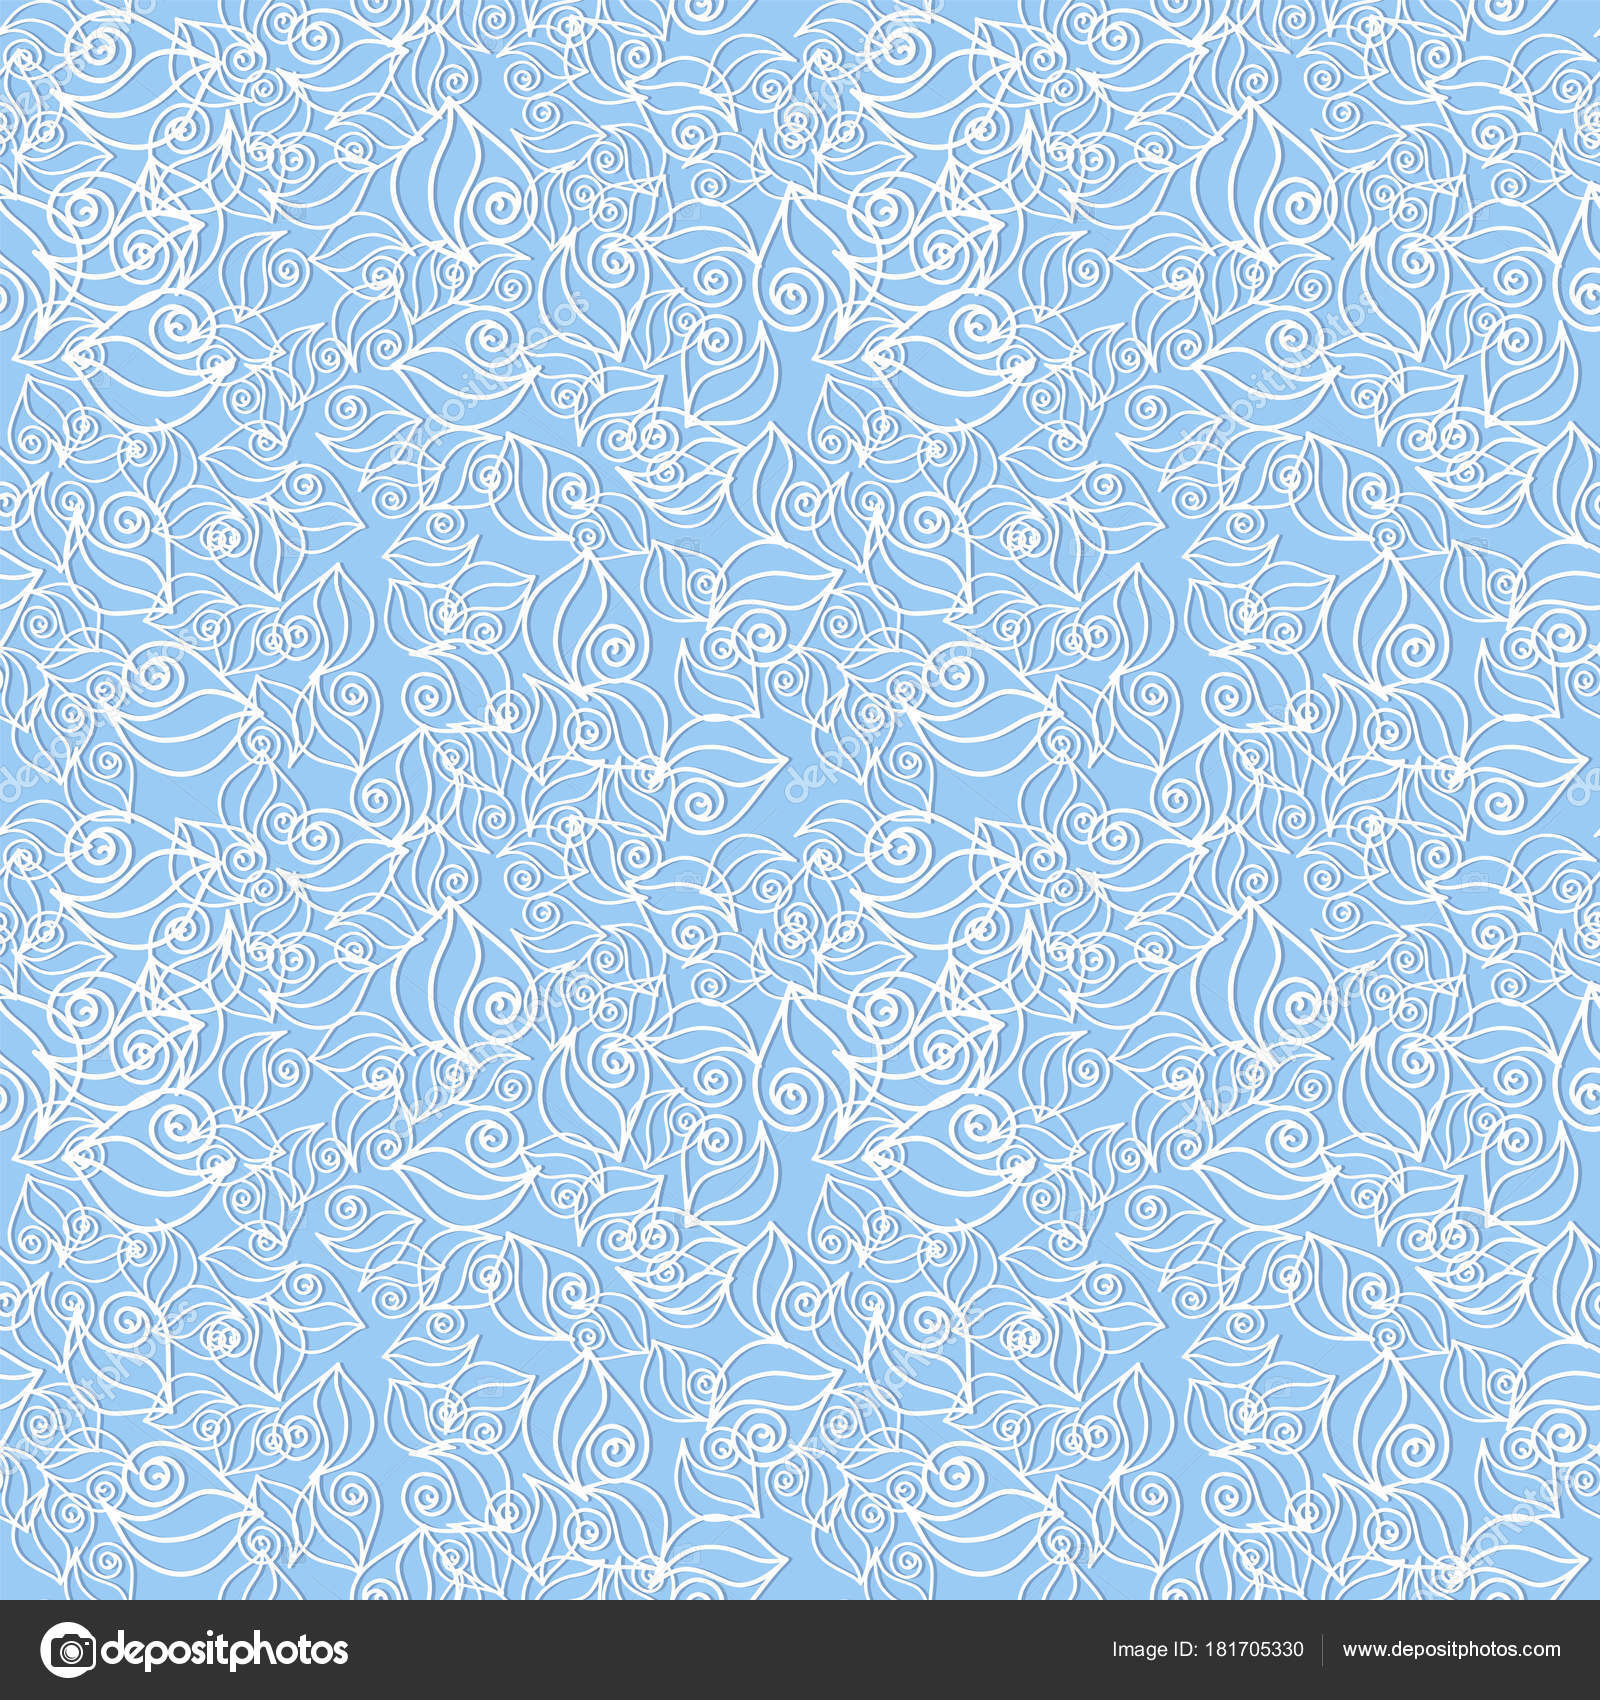 seamless blue pattern vector background abstract shapes patterned